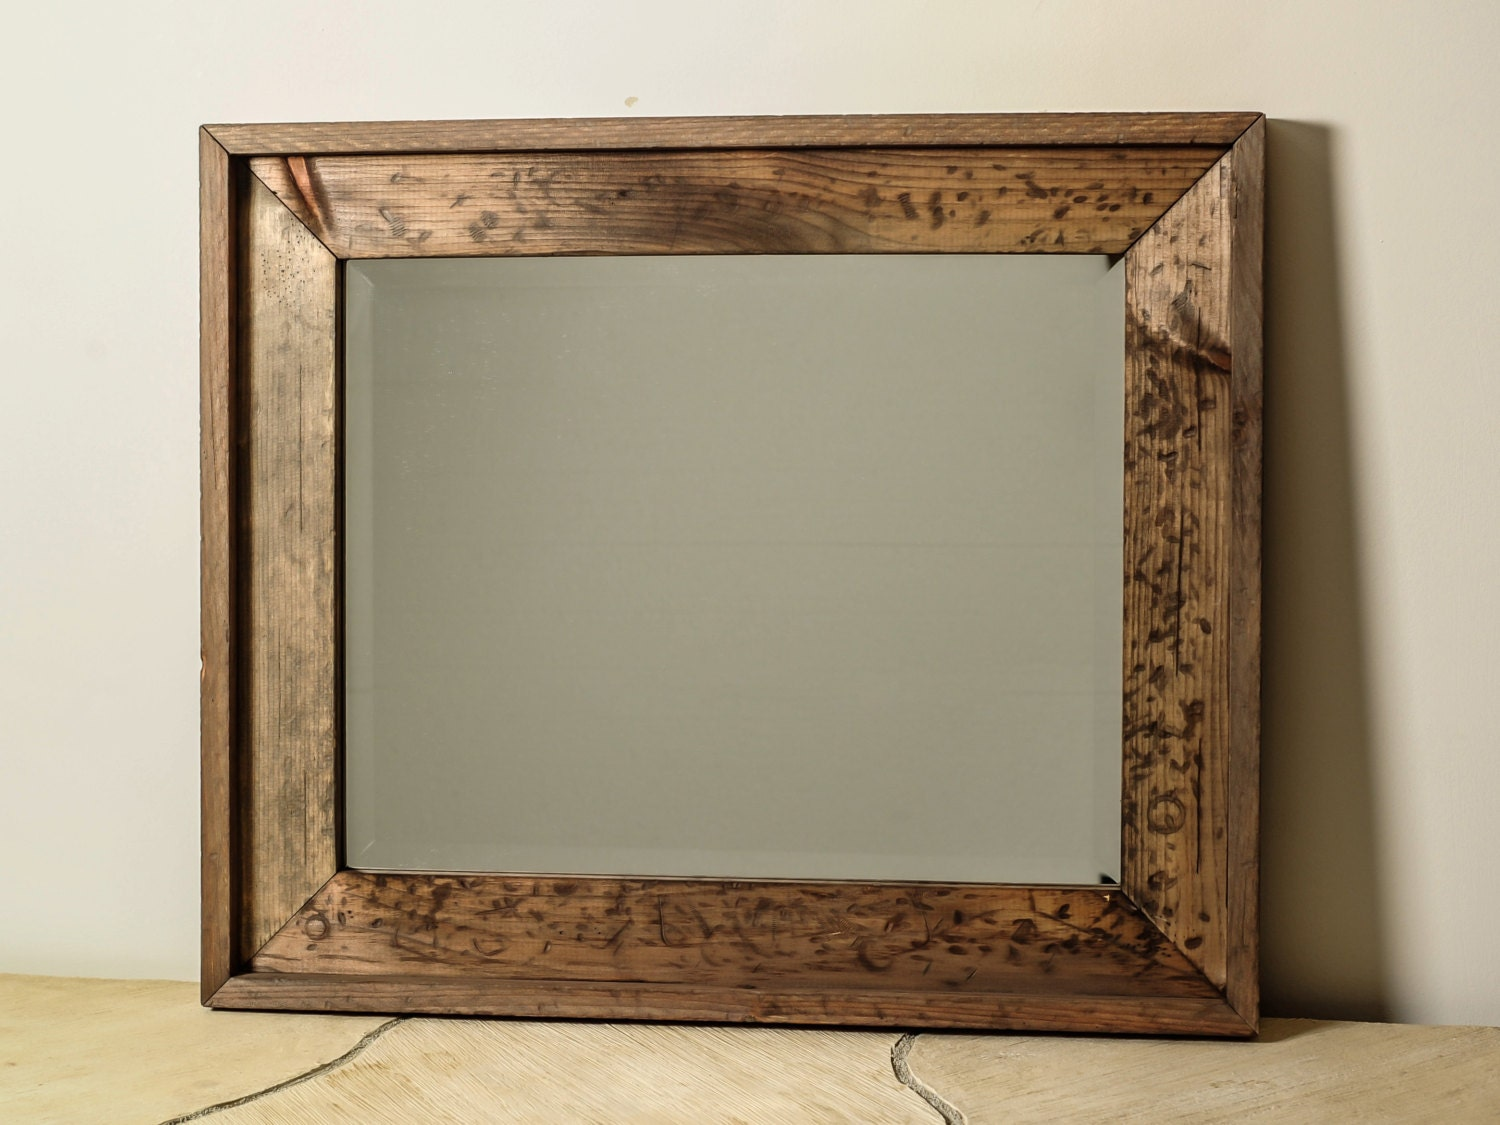 Large distressed wood mirror by englertandenglert on etsy for Wood framed mirrors